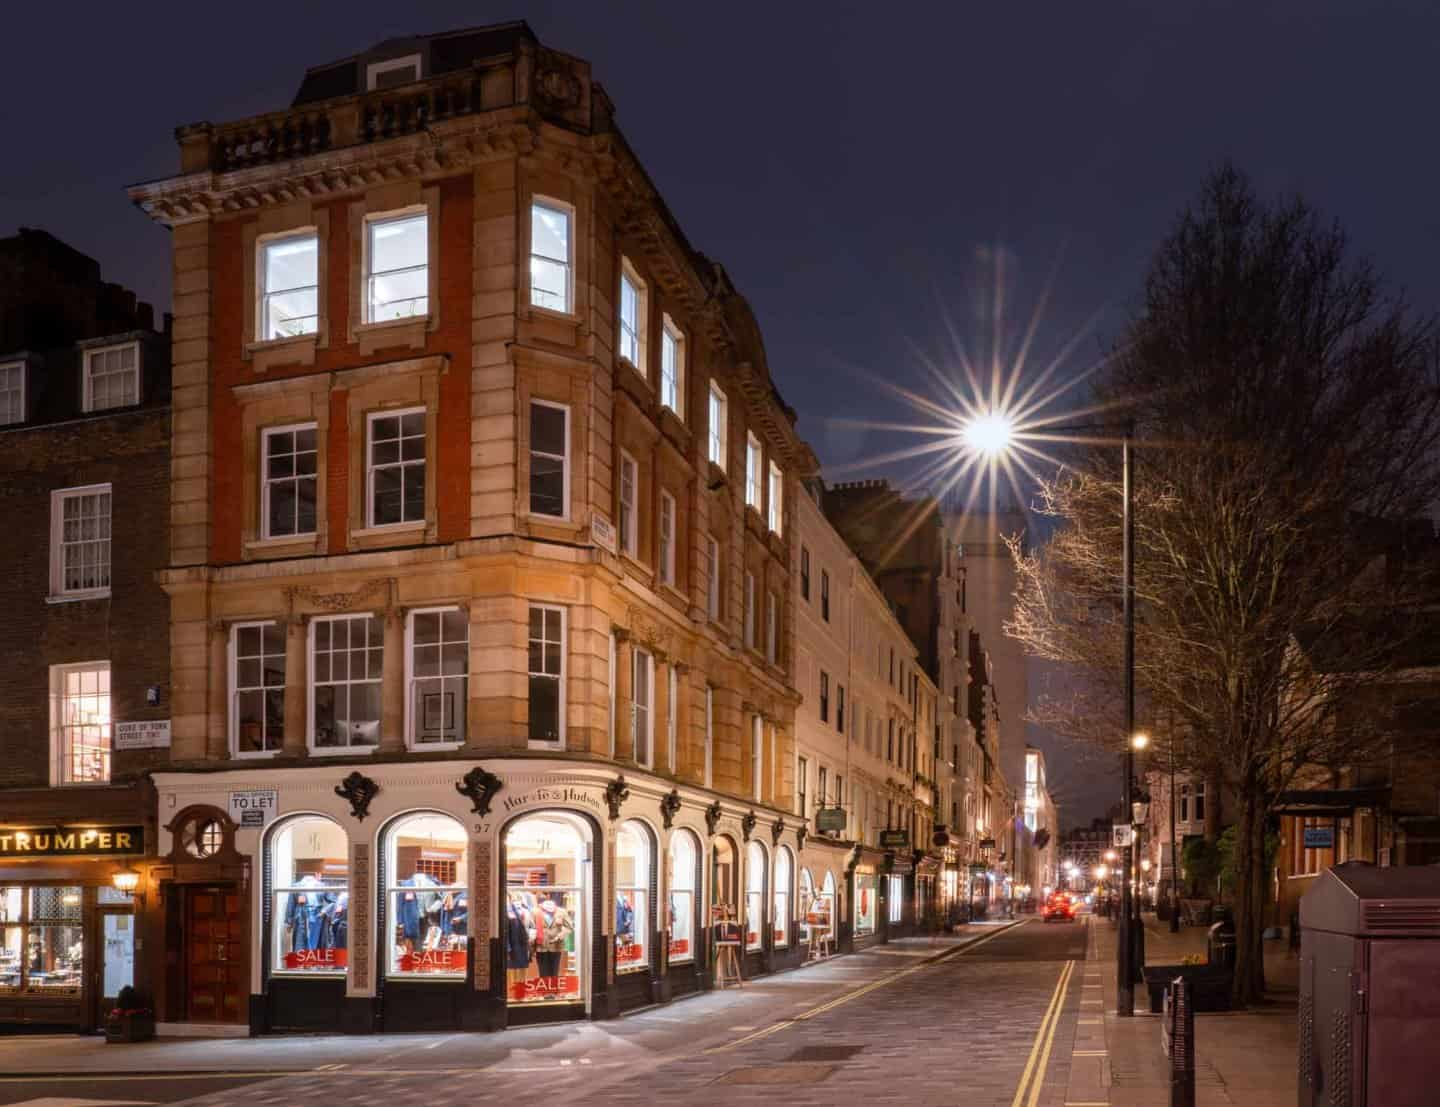 Jermyn Street is famous in London for its excellent men's clothing stores.